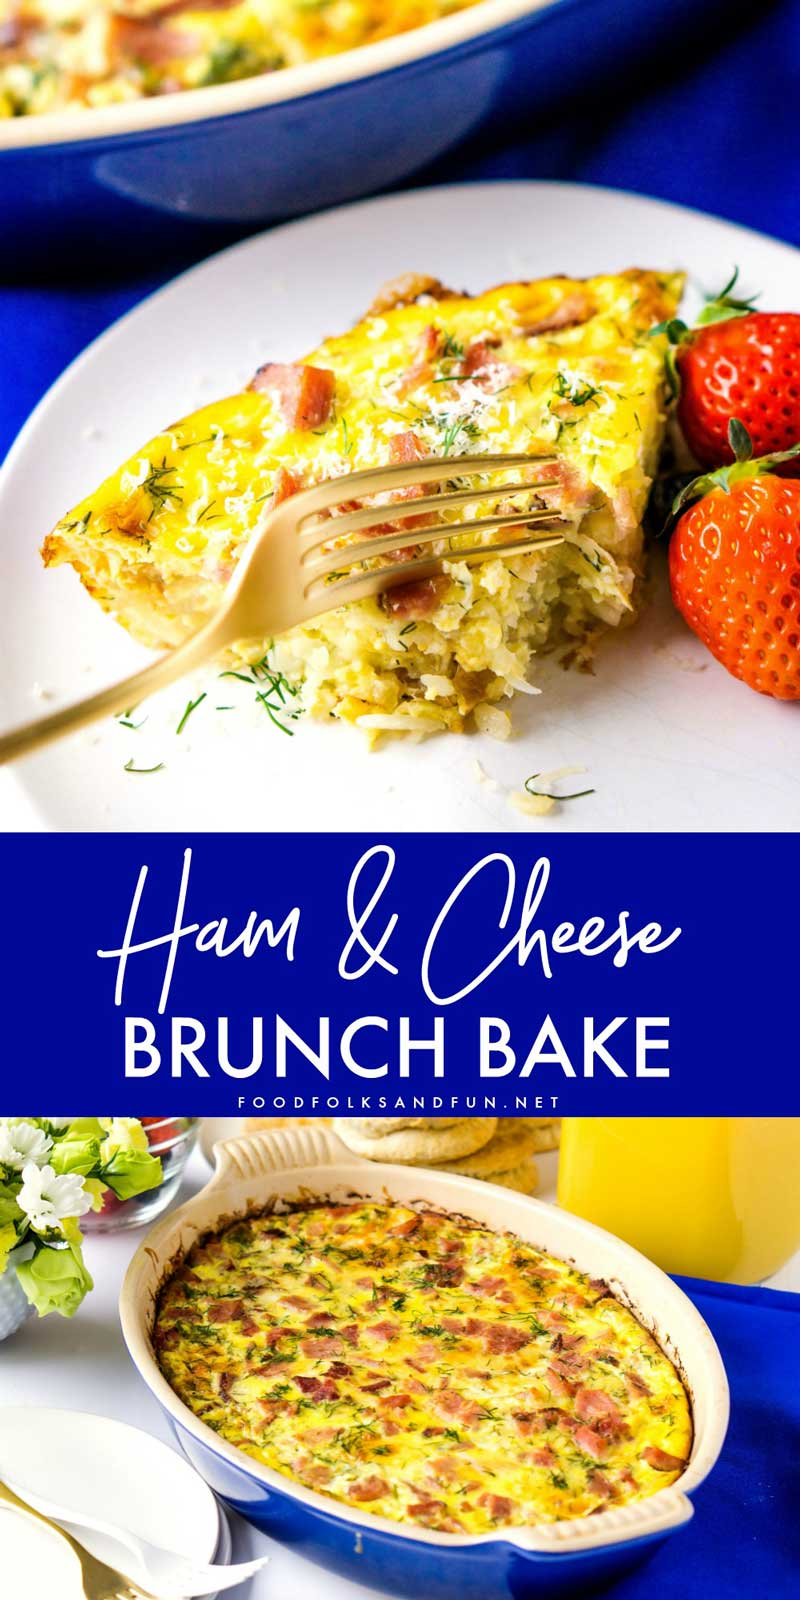 This Sherry, Ham and Cheese Brunch Bake is an easy main dish for brunch. It's layered with so much flavor and you can make it ahead of time, too.